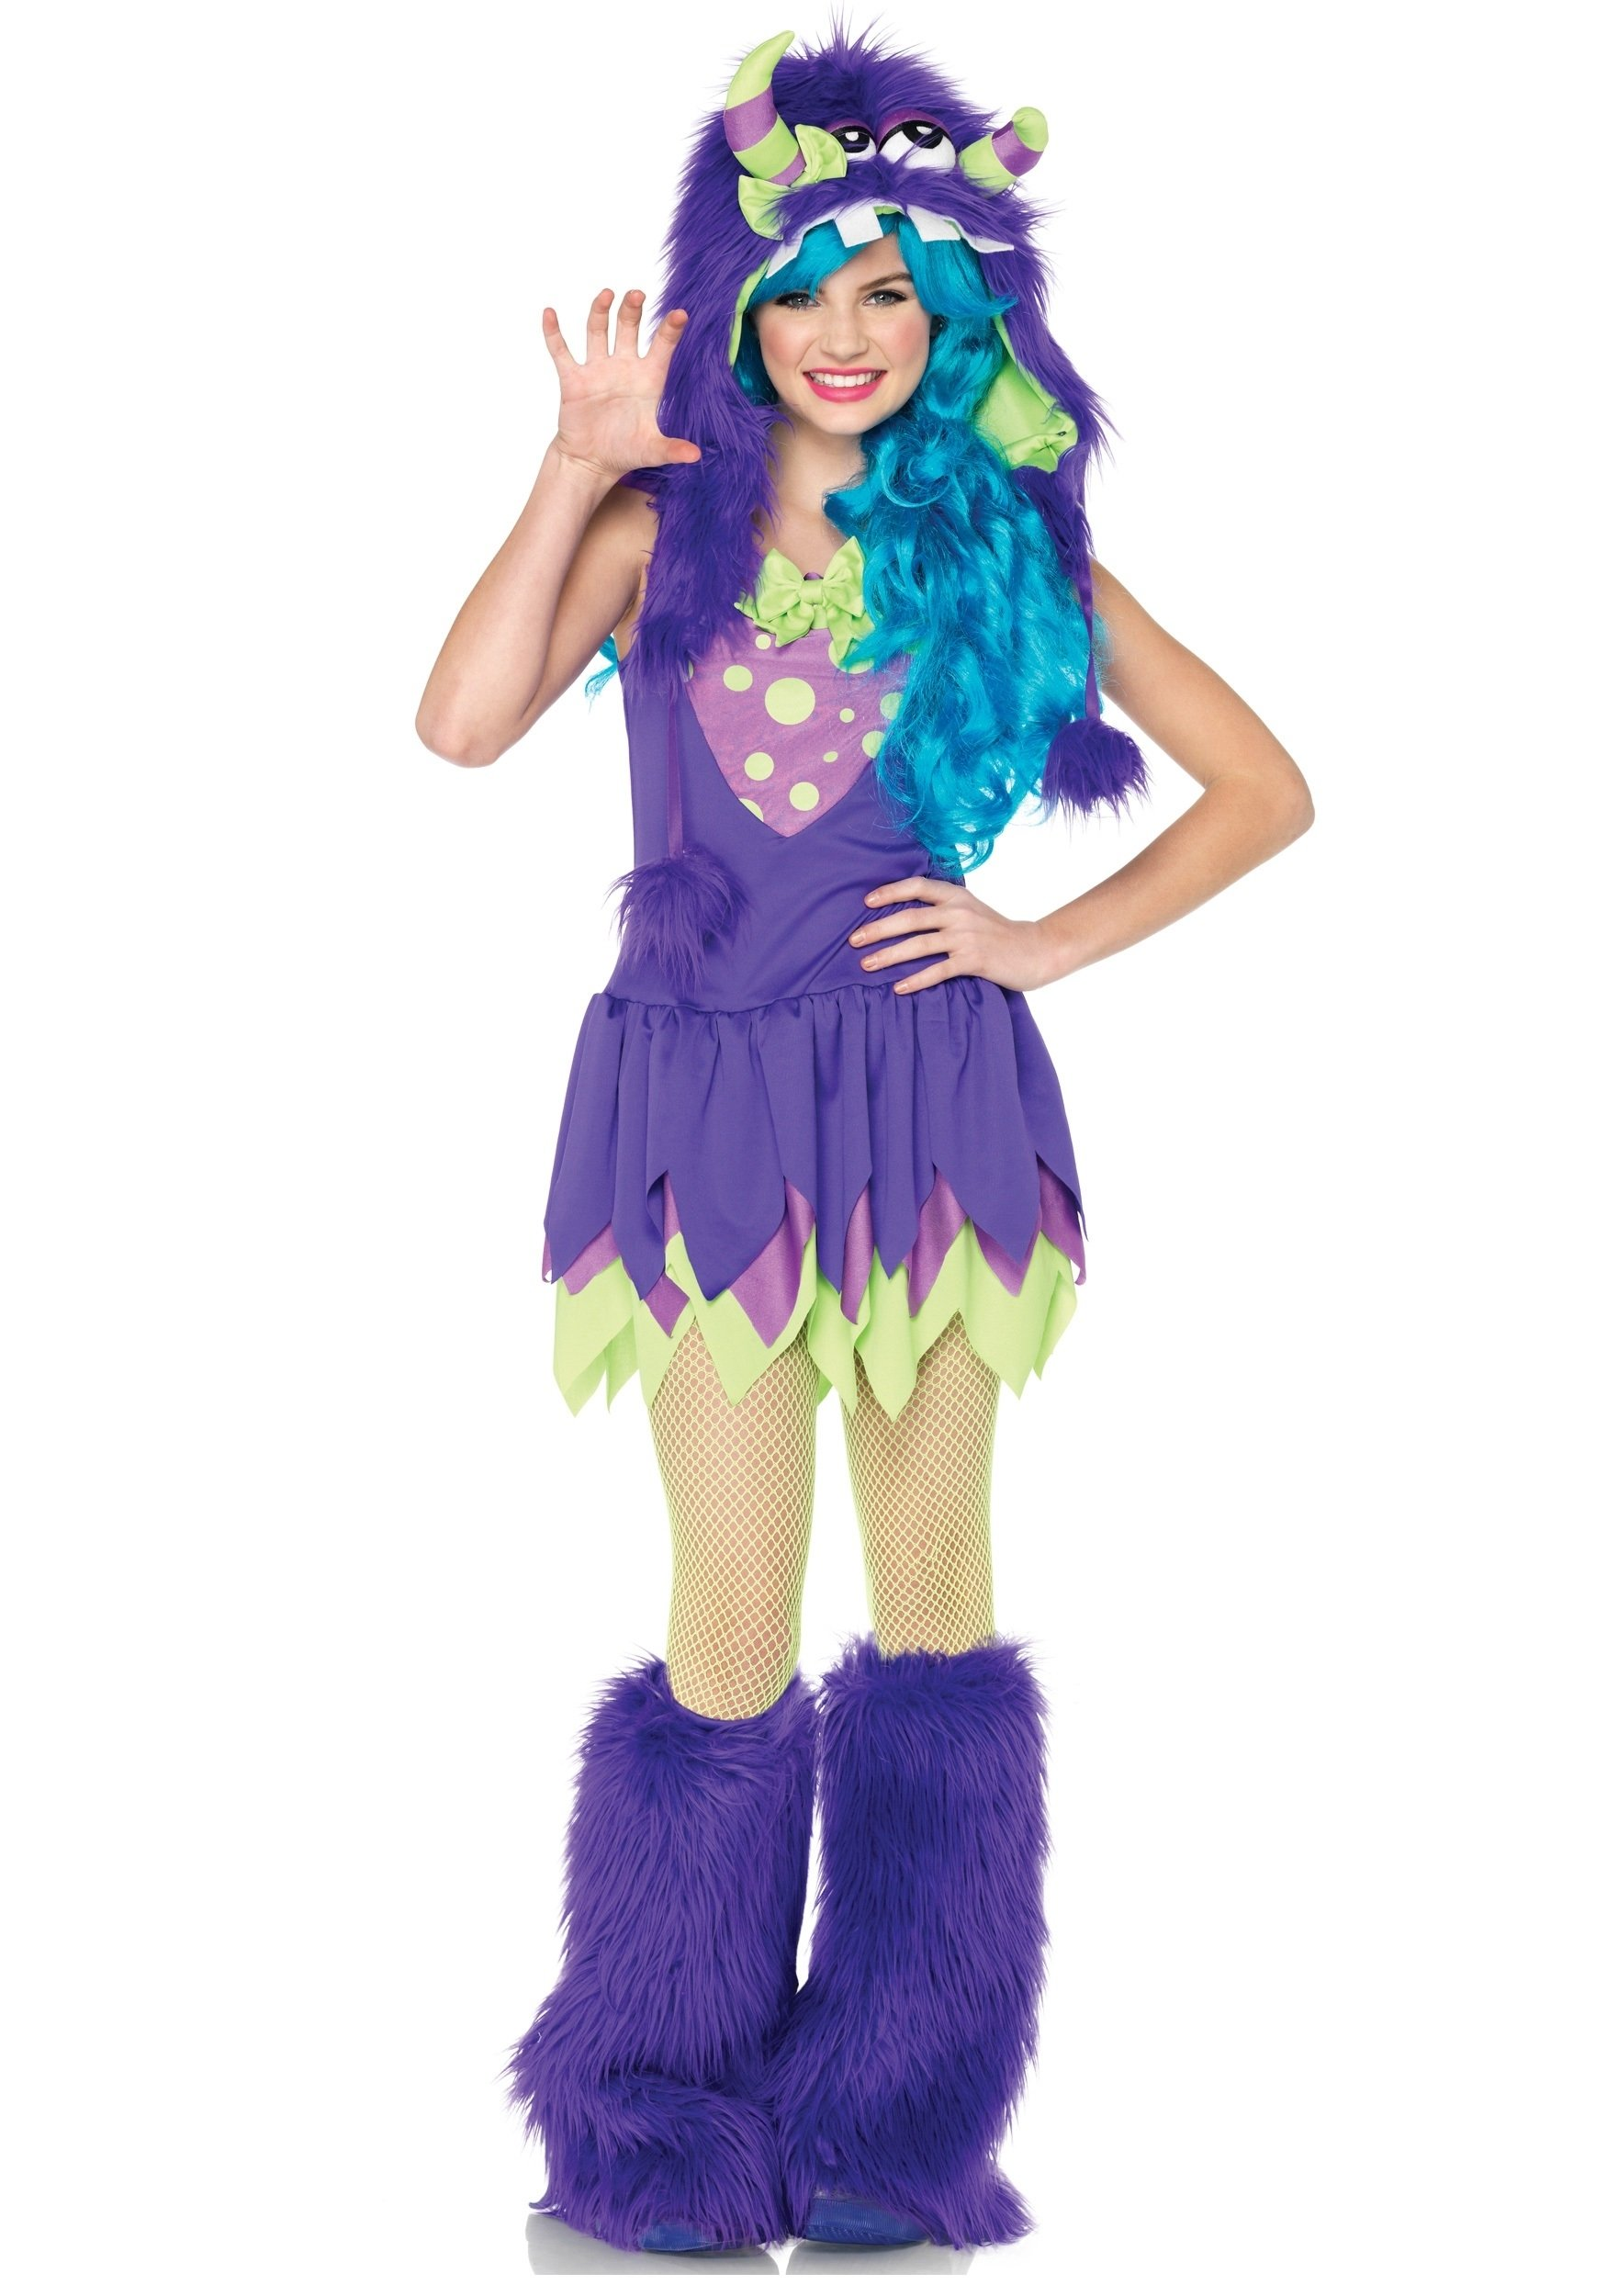 10 Famous Clever Halloween Costume Ideas Women homemade halloween costumes for tweens teenage girl halloween 1 2020